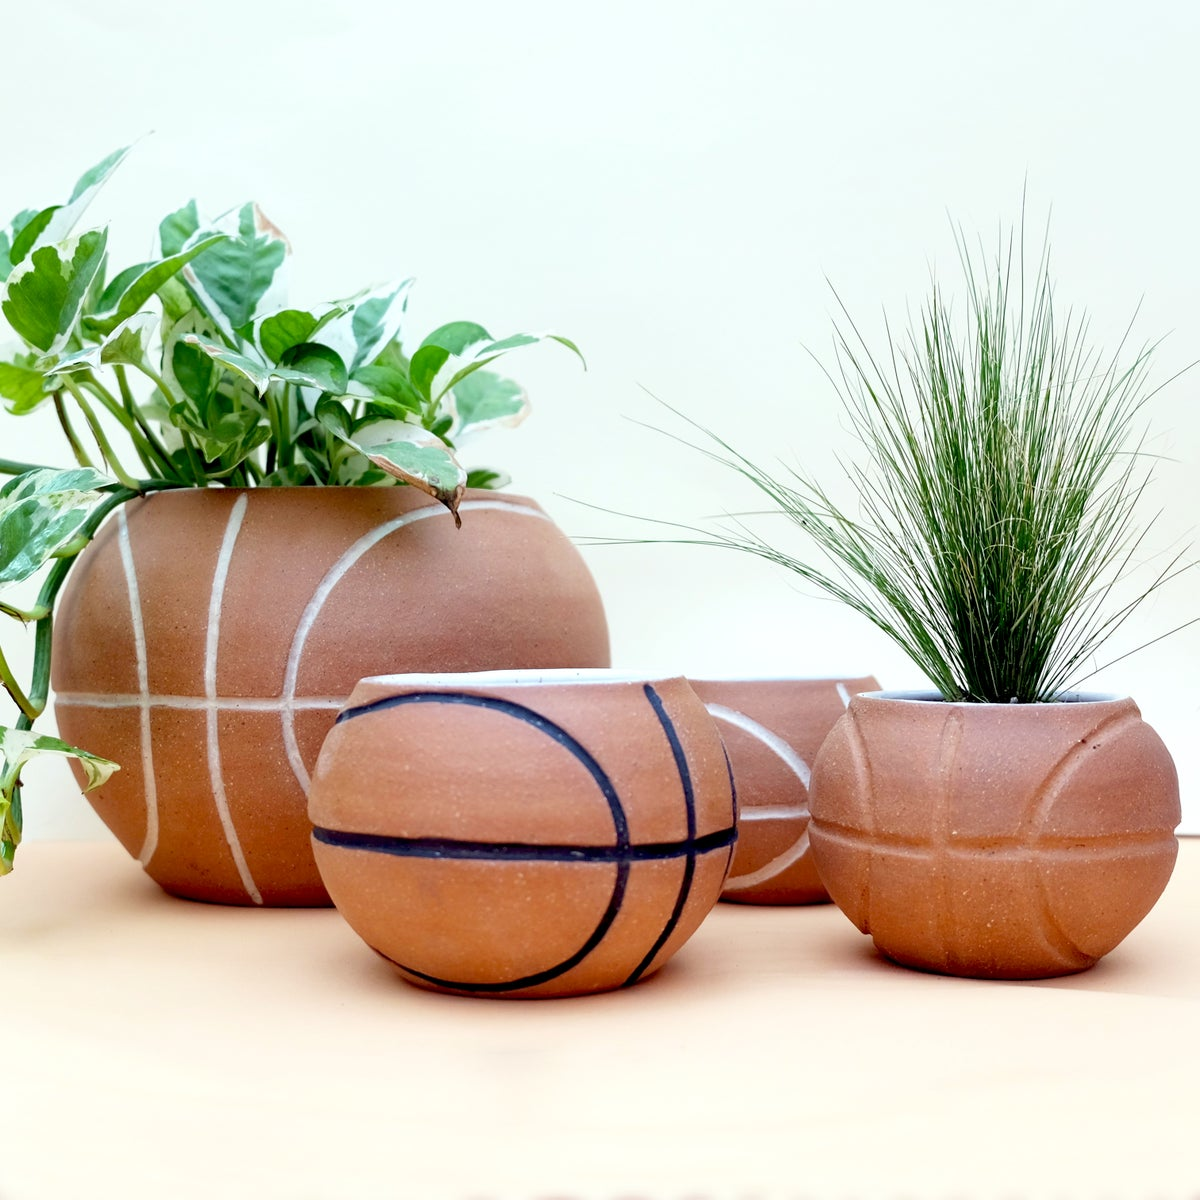 Image of Basketballs